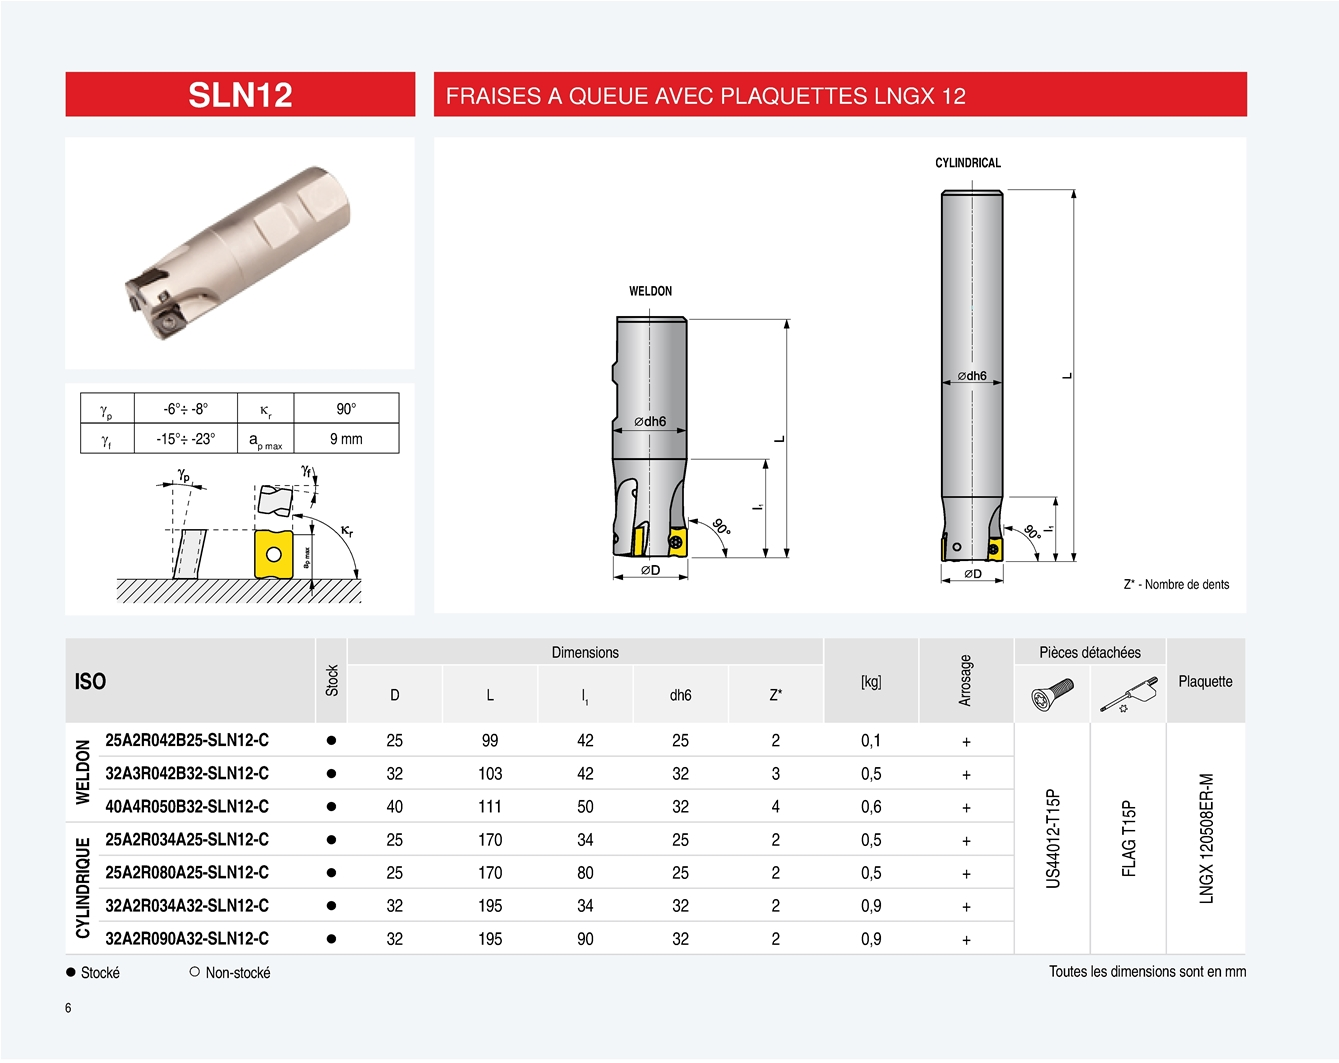 LNGX 12 queue cylindrique et queue weldon